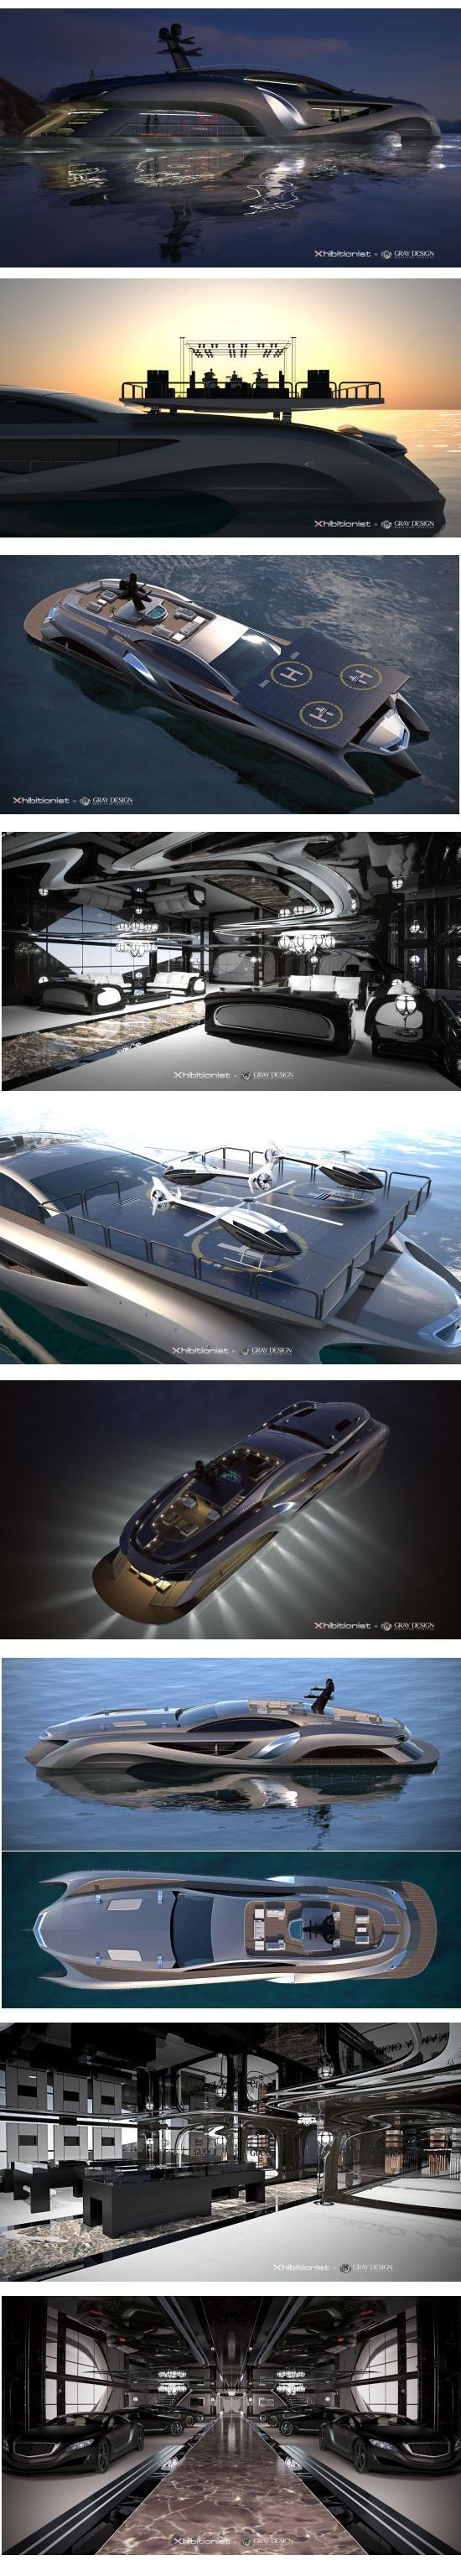 Concept Superyacht Xhibitionist by Gray Design: This extraordinary yacht by is 75-meters in size and decked out with the best of technology and design. Features a car showroom, retail space, entertaining room and a roof with built-in solar panels that double as a helicopter landing pad. On the engine side, it boasts a 630-horsepower V12 engine, making quick getaways a breeze. If you have to ask the price you can't afford it. For more ideas: http://www.jetclassgroup.com/en/ #ad